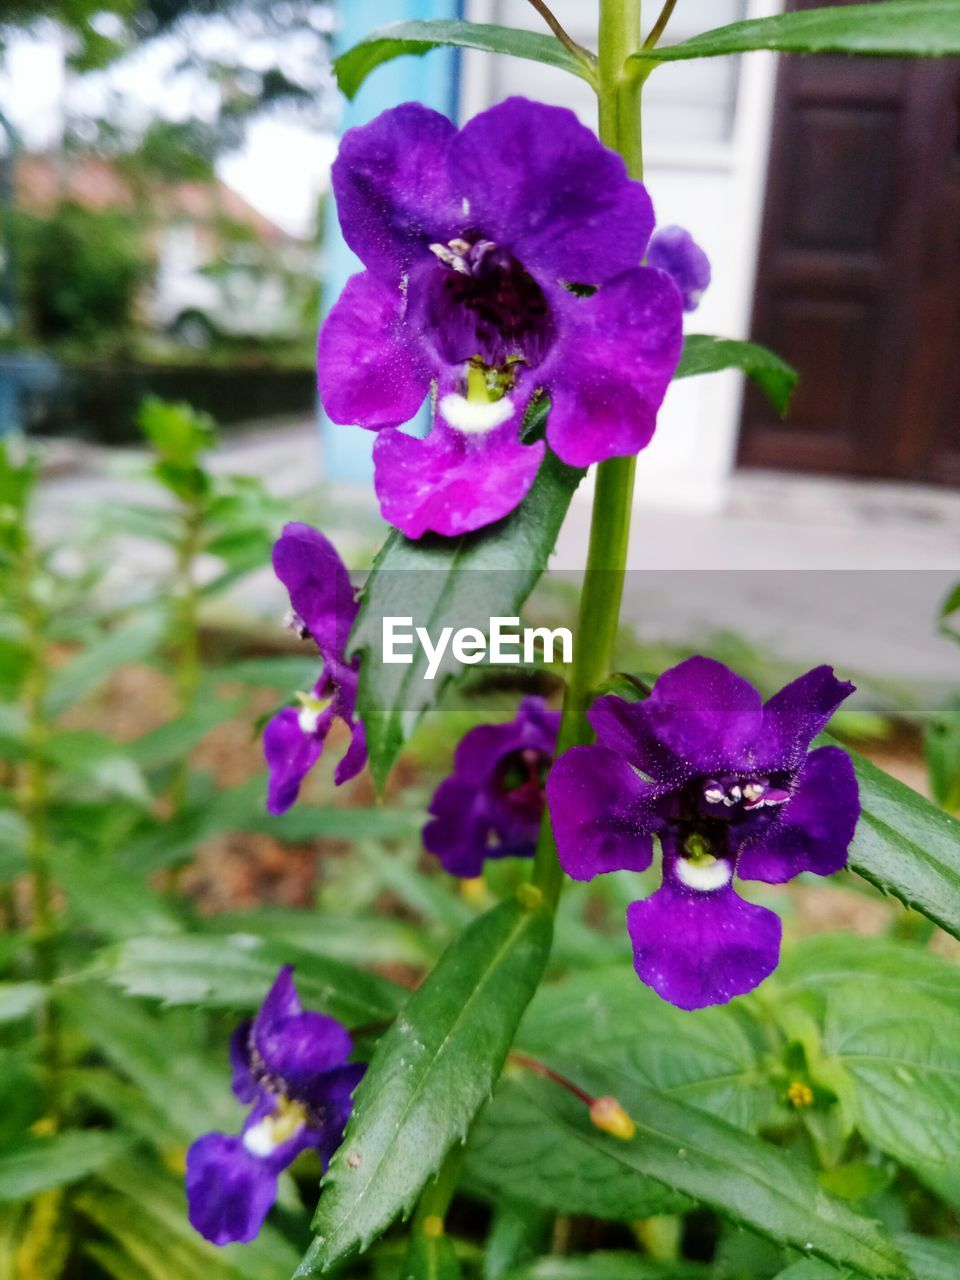 flower, purple, petal, fragility, beauty in nature, growth, freshness, nature, flower head, day, outdoors, plant, no people, close-up, blooming, petunia